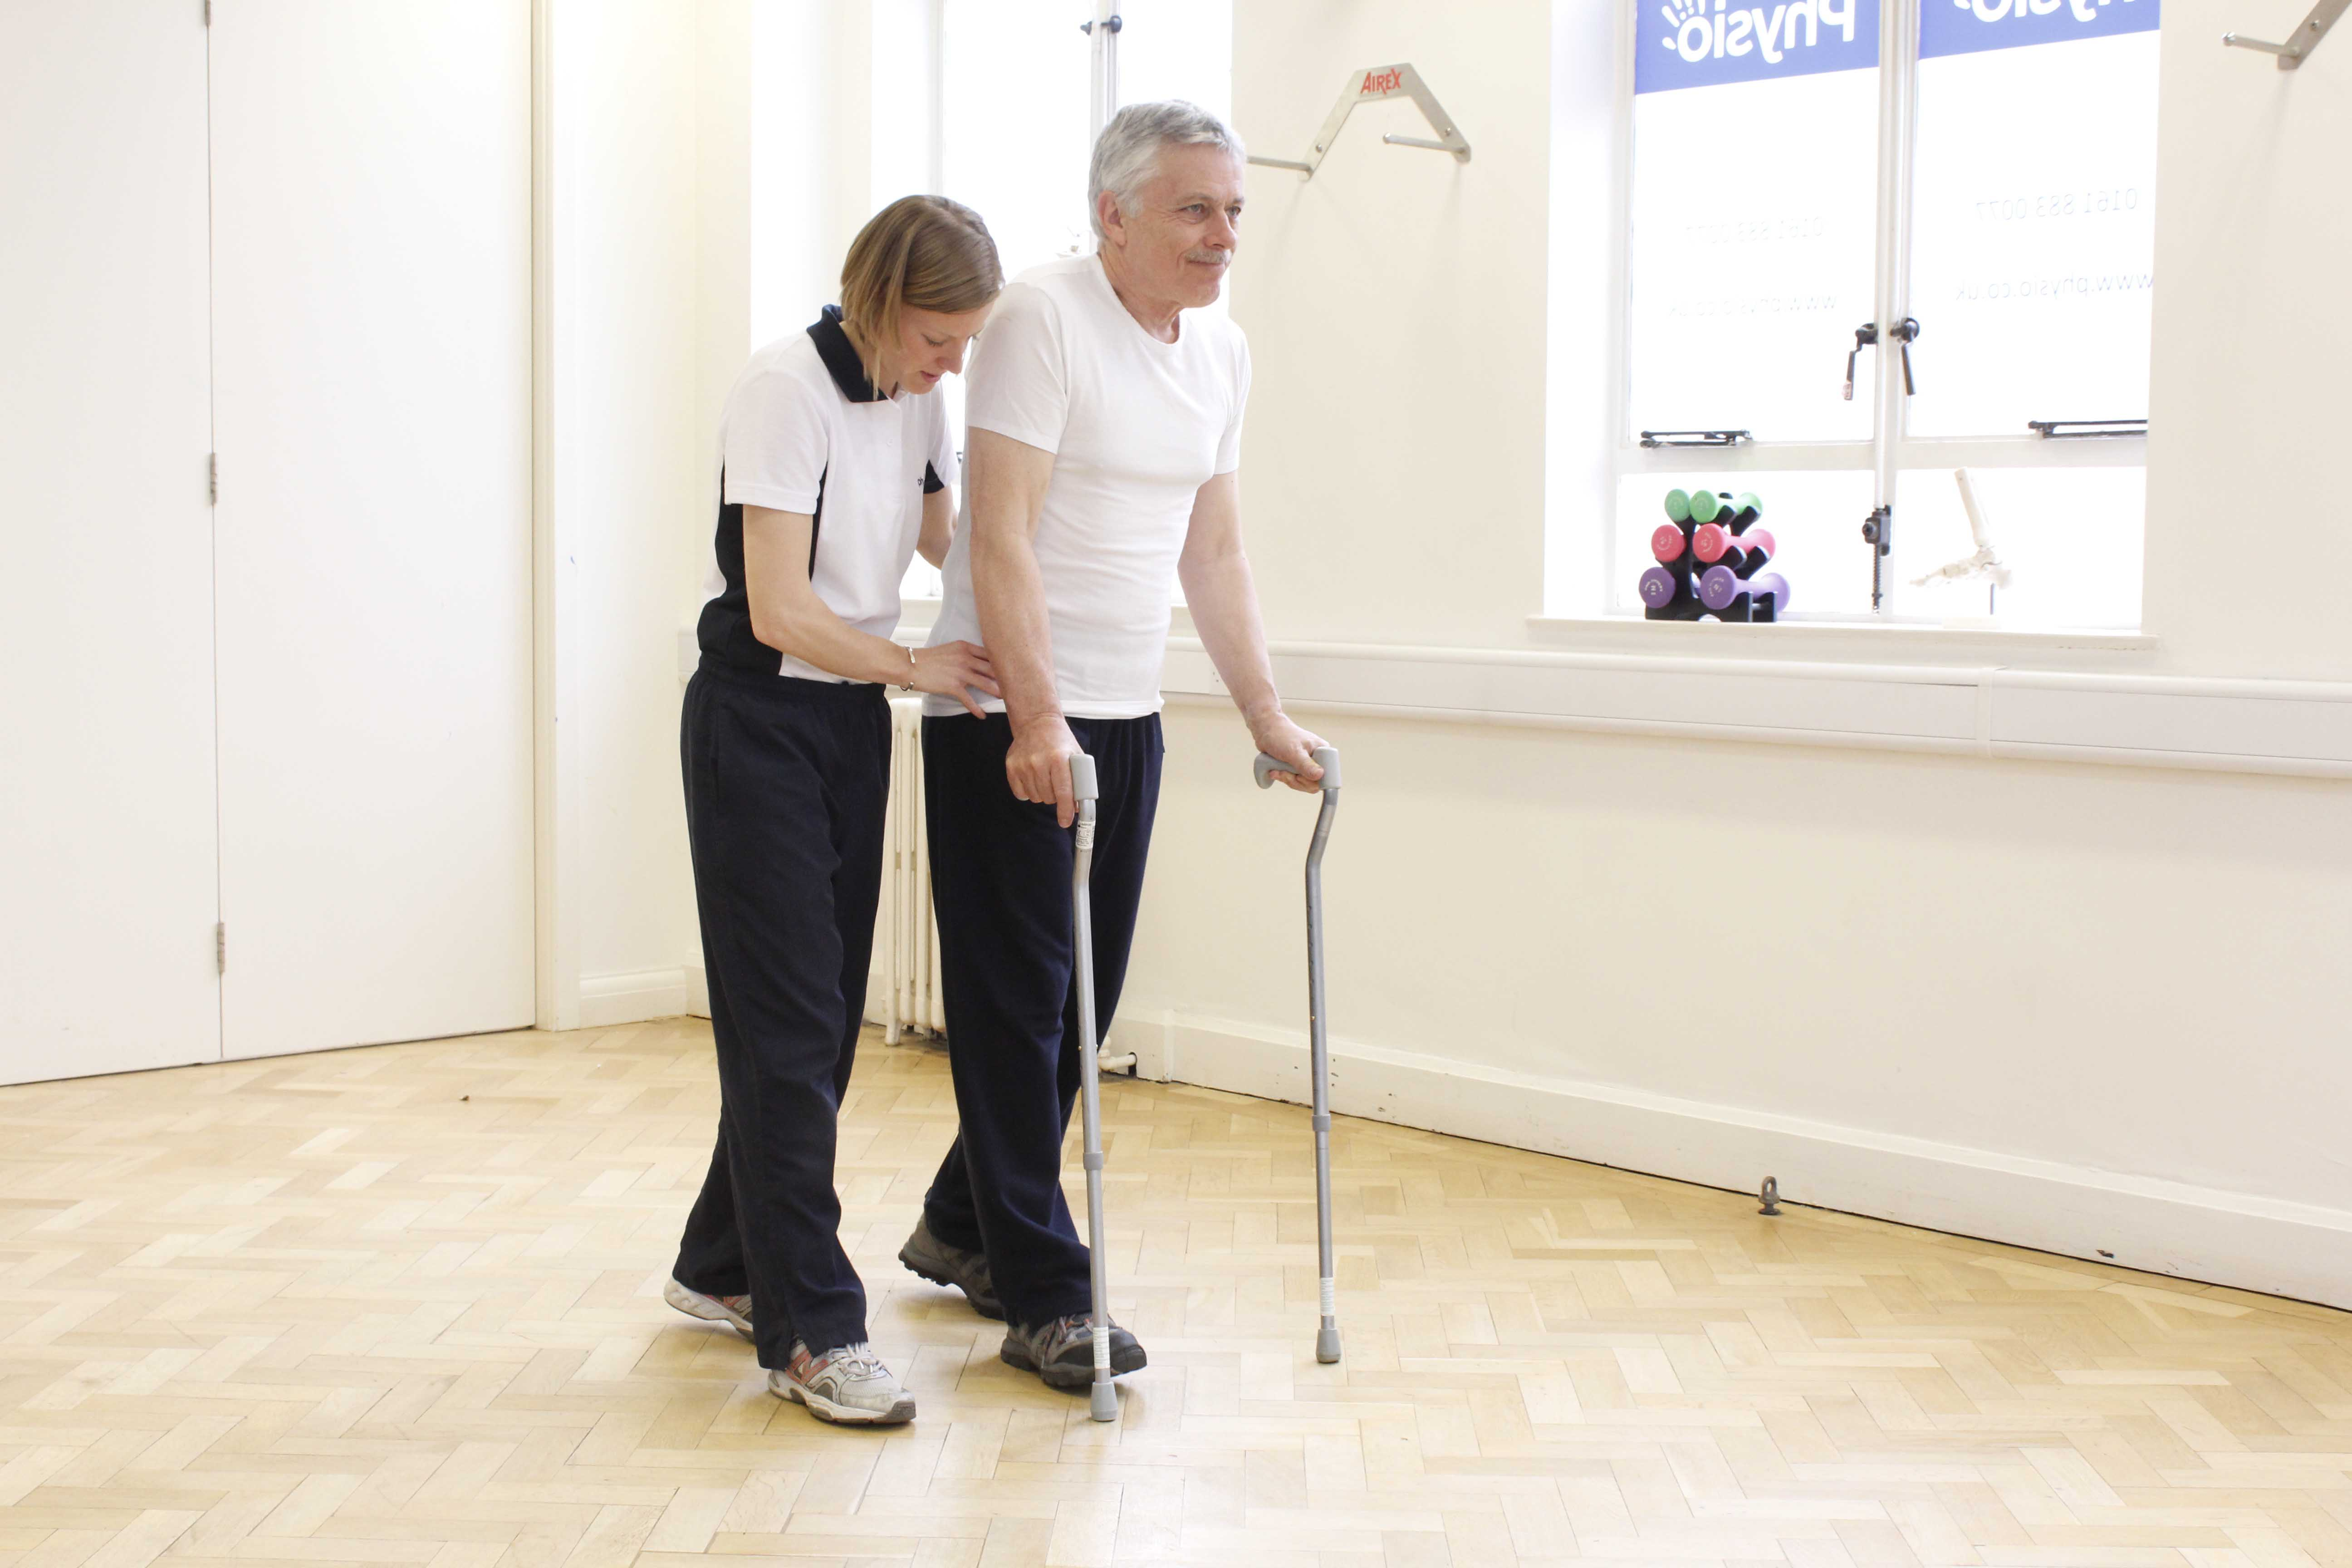 Gait re-education exercises to help address biomechanical abnormalities